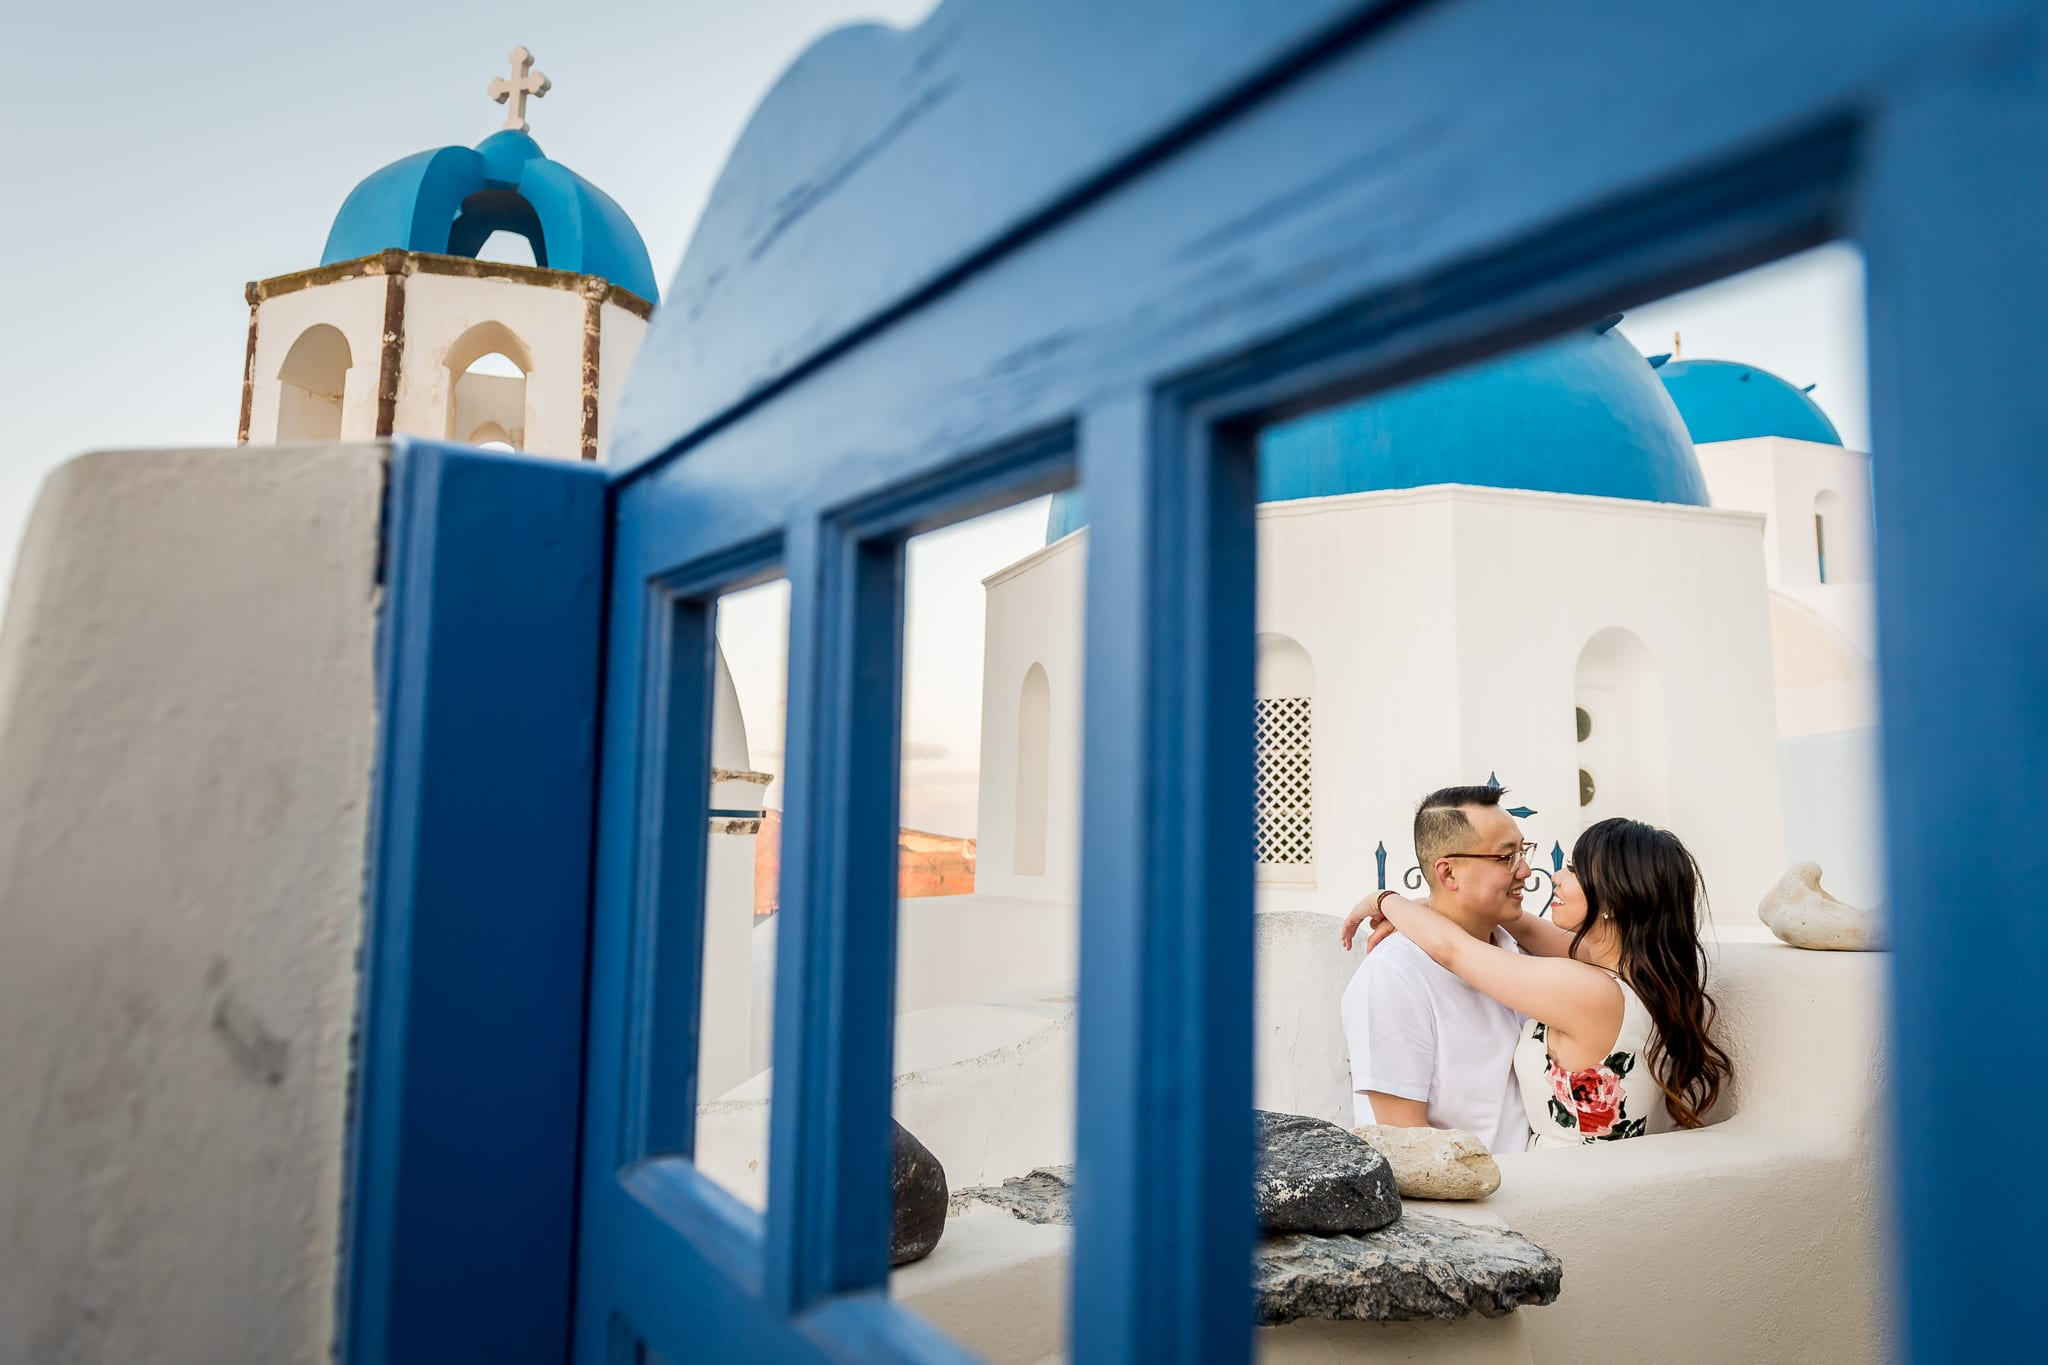 Santorini Honeymoon photo of a couple cuddling close, shot through a beautiful blue gate with the three blue domes of Santorini in the background